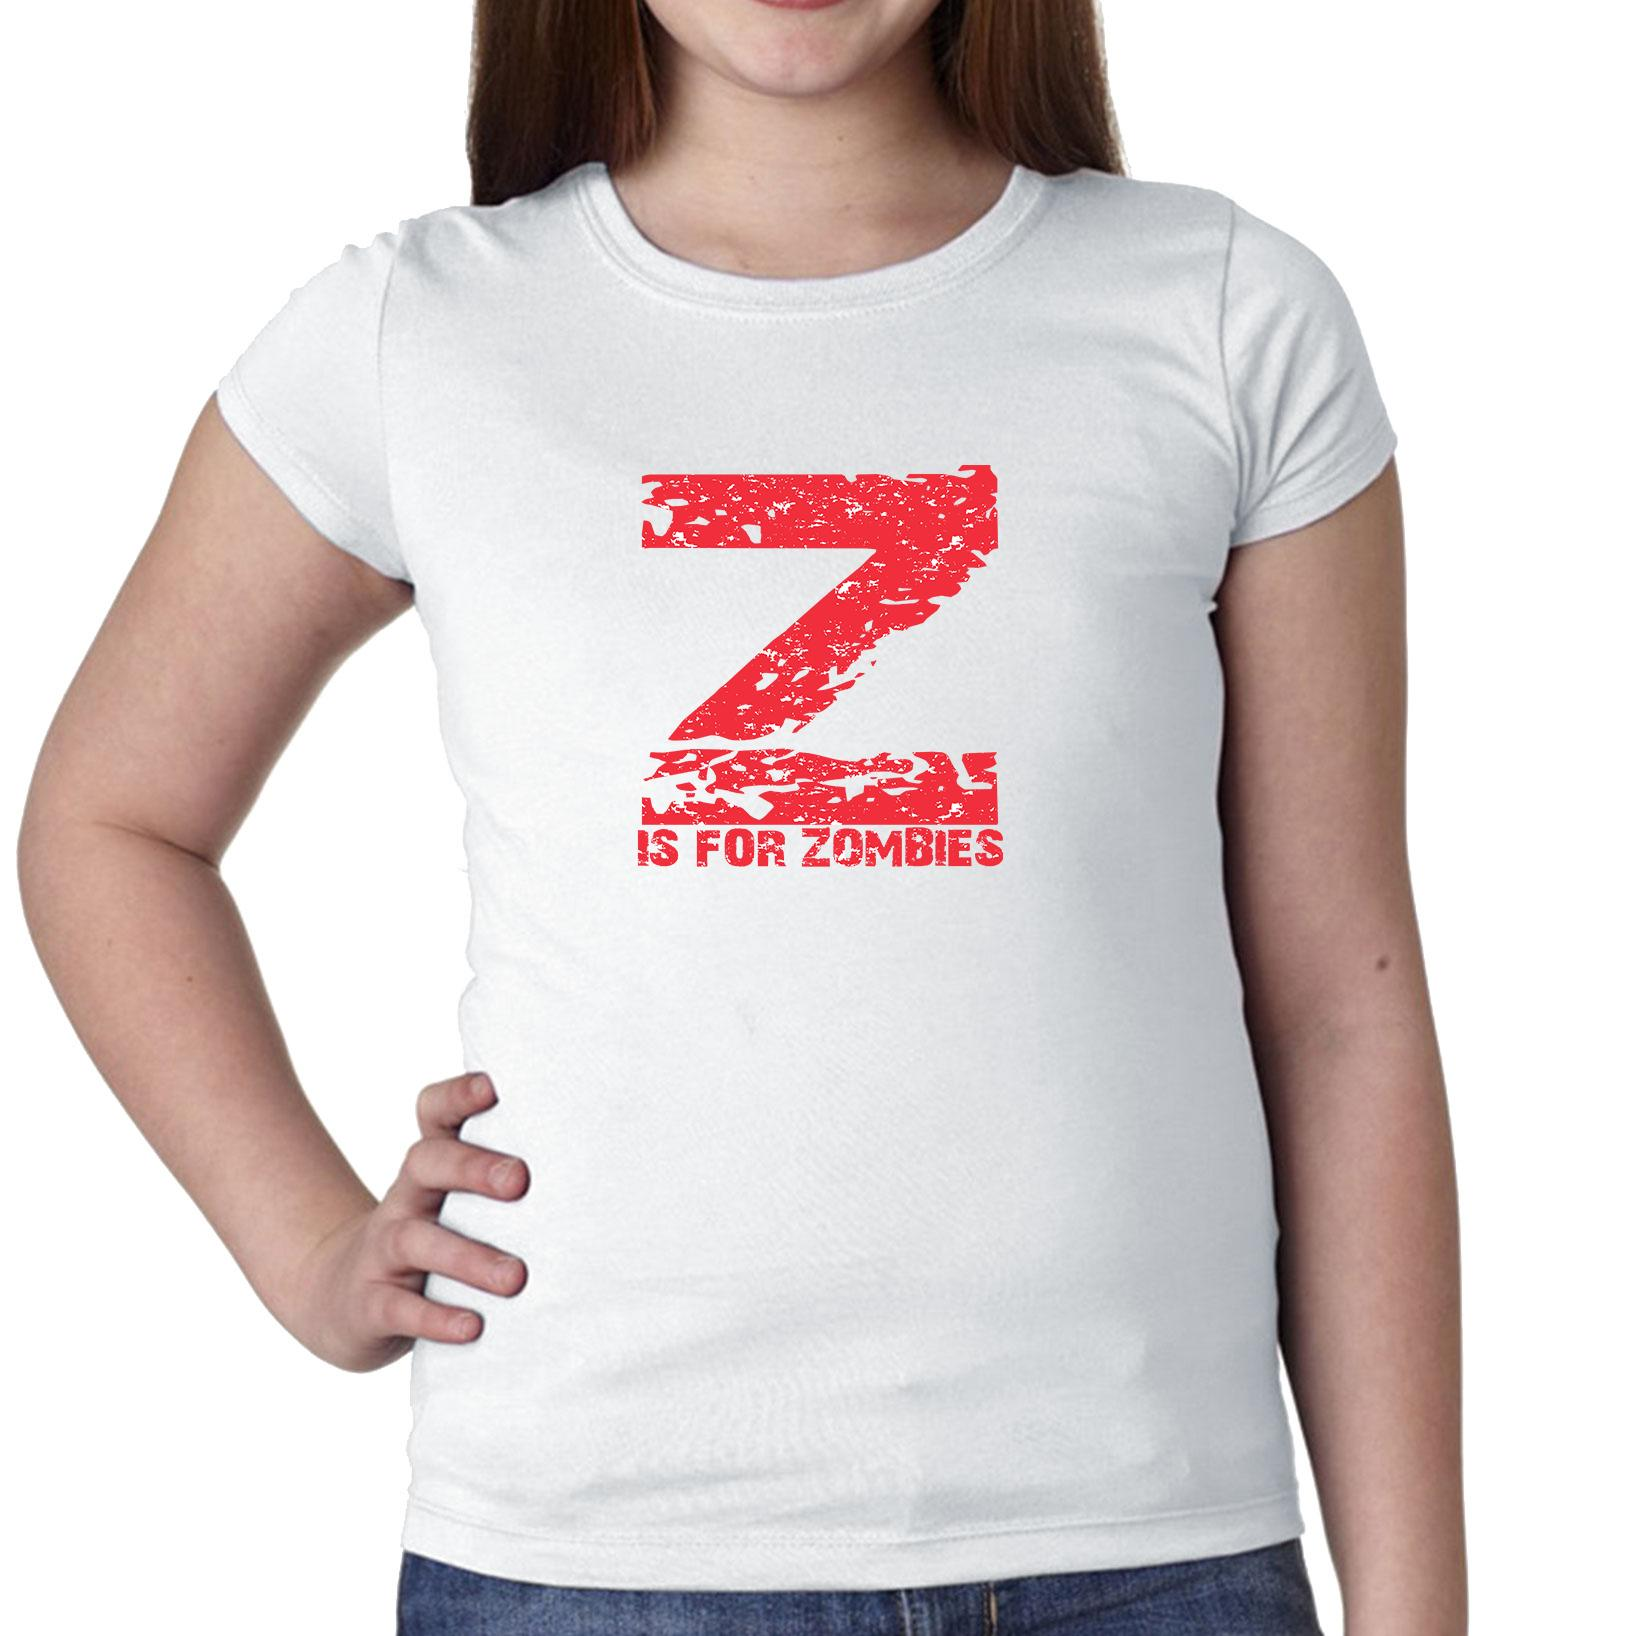 Z Is For Zombies - Red Large Print Trendy Girl's Cotton Youth T-Shirt